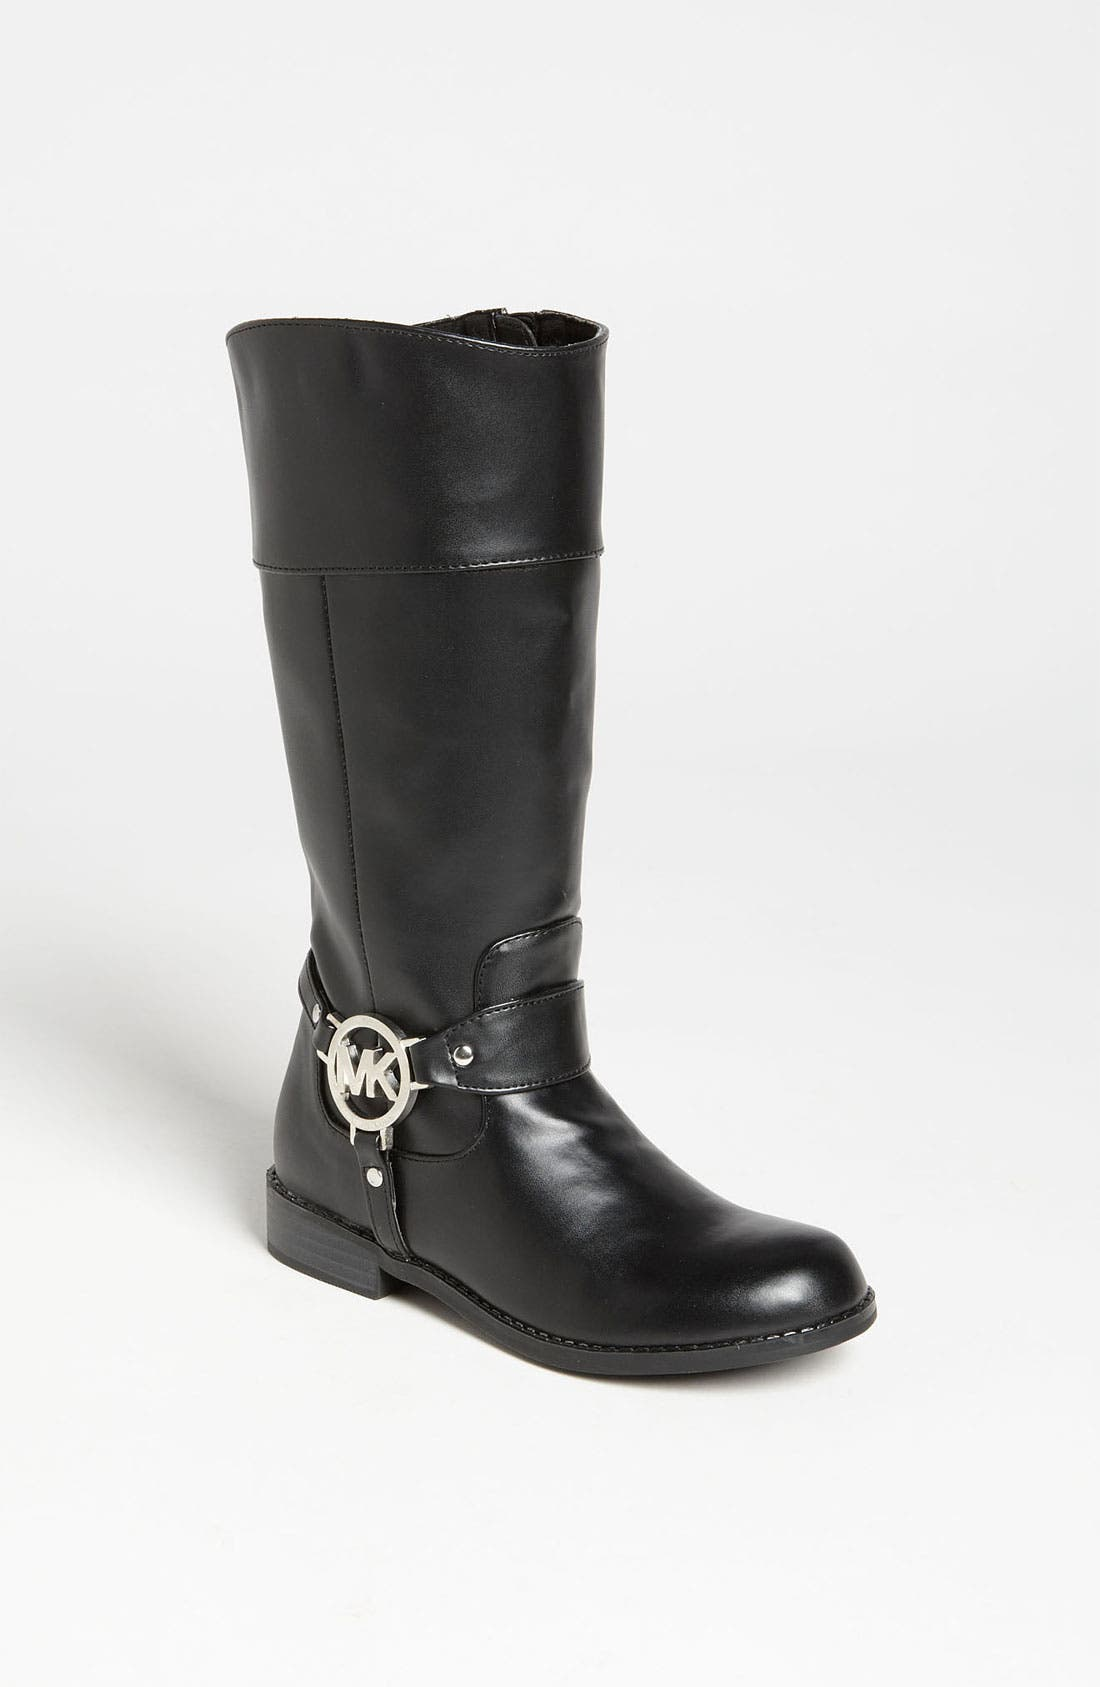 Alternate Image 1 Selected - MICHAEL Michael Kors 'Bin' Boot (Toddler, Little Kid & Big Kid)